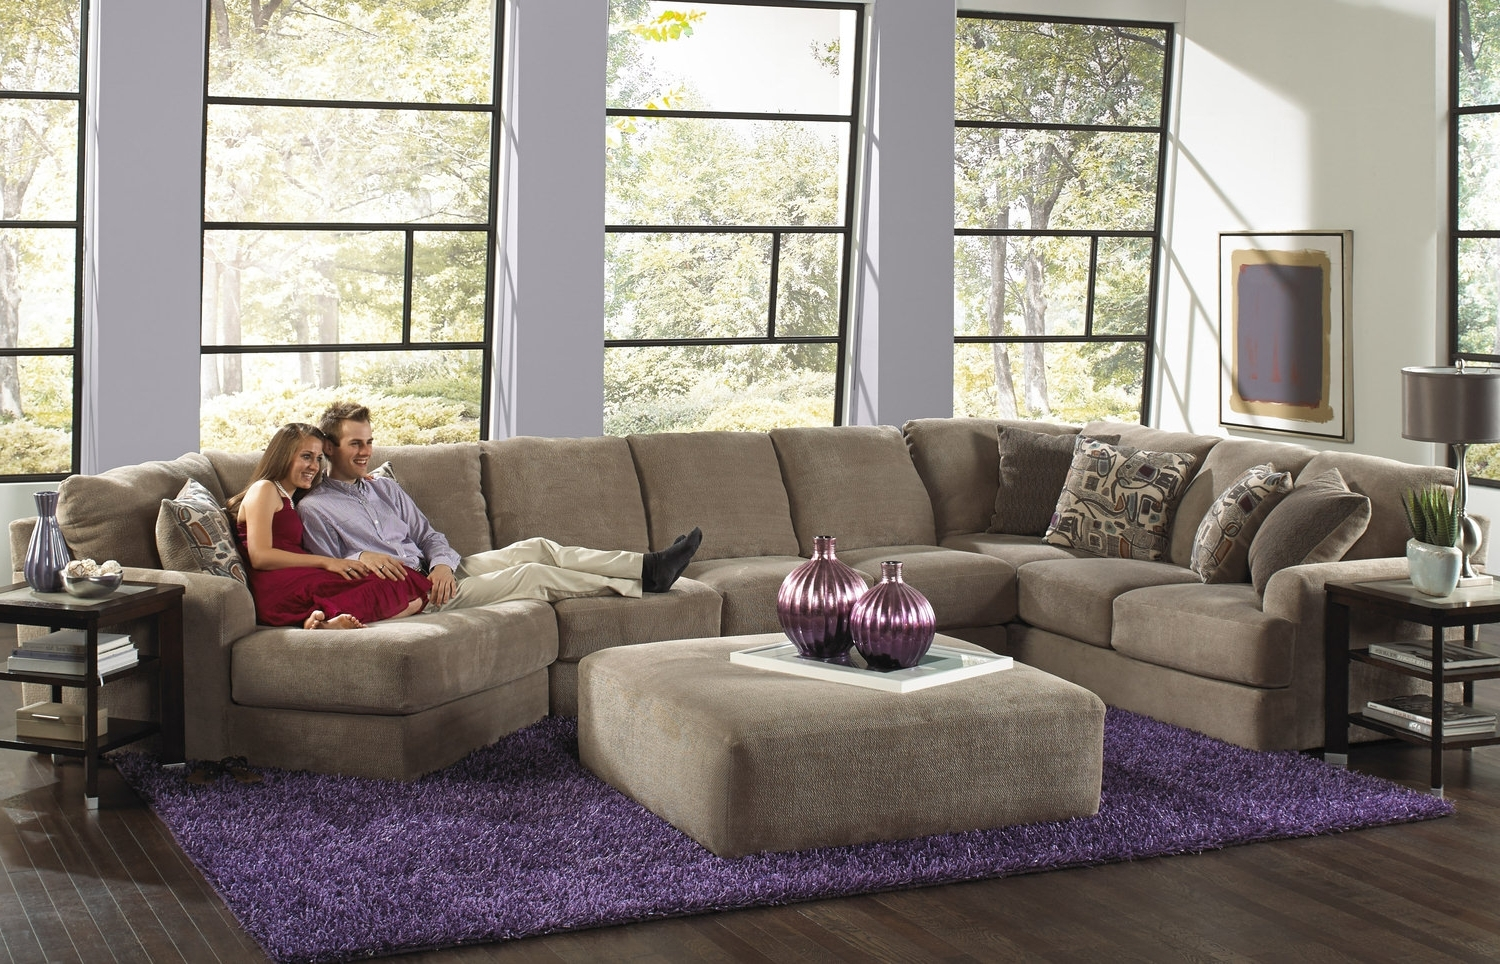 Most Recent 110X110 Sectional Sofas Within Furniture : Sectional Sofa 110 X 110 Corner Couch Ideas Sectional (View 13 of 15)